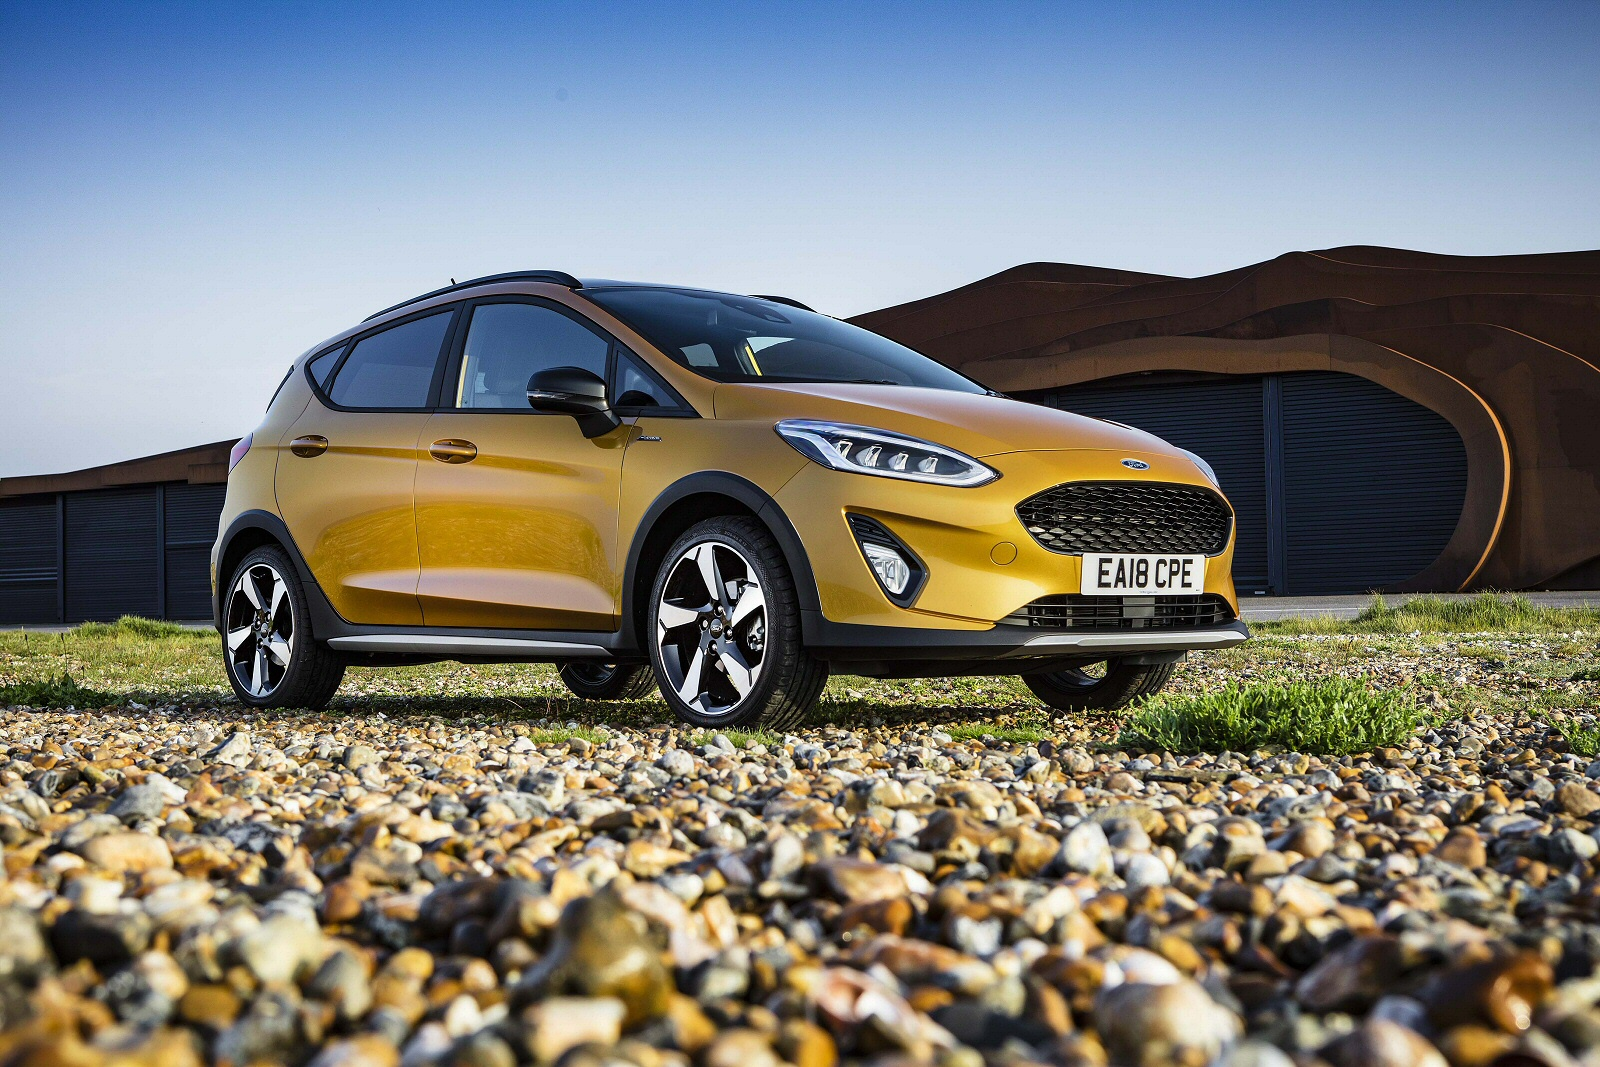 new ford fiesta 1 0 ecoboost active 1 5dr auto petrol. Black Bedroom Furniture Sets. Home Design Ideas